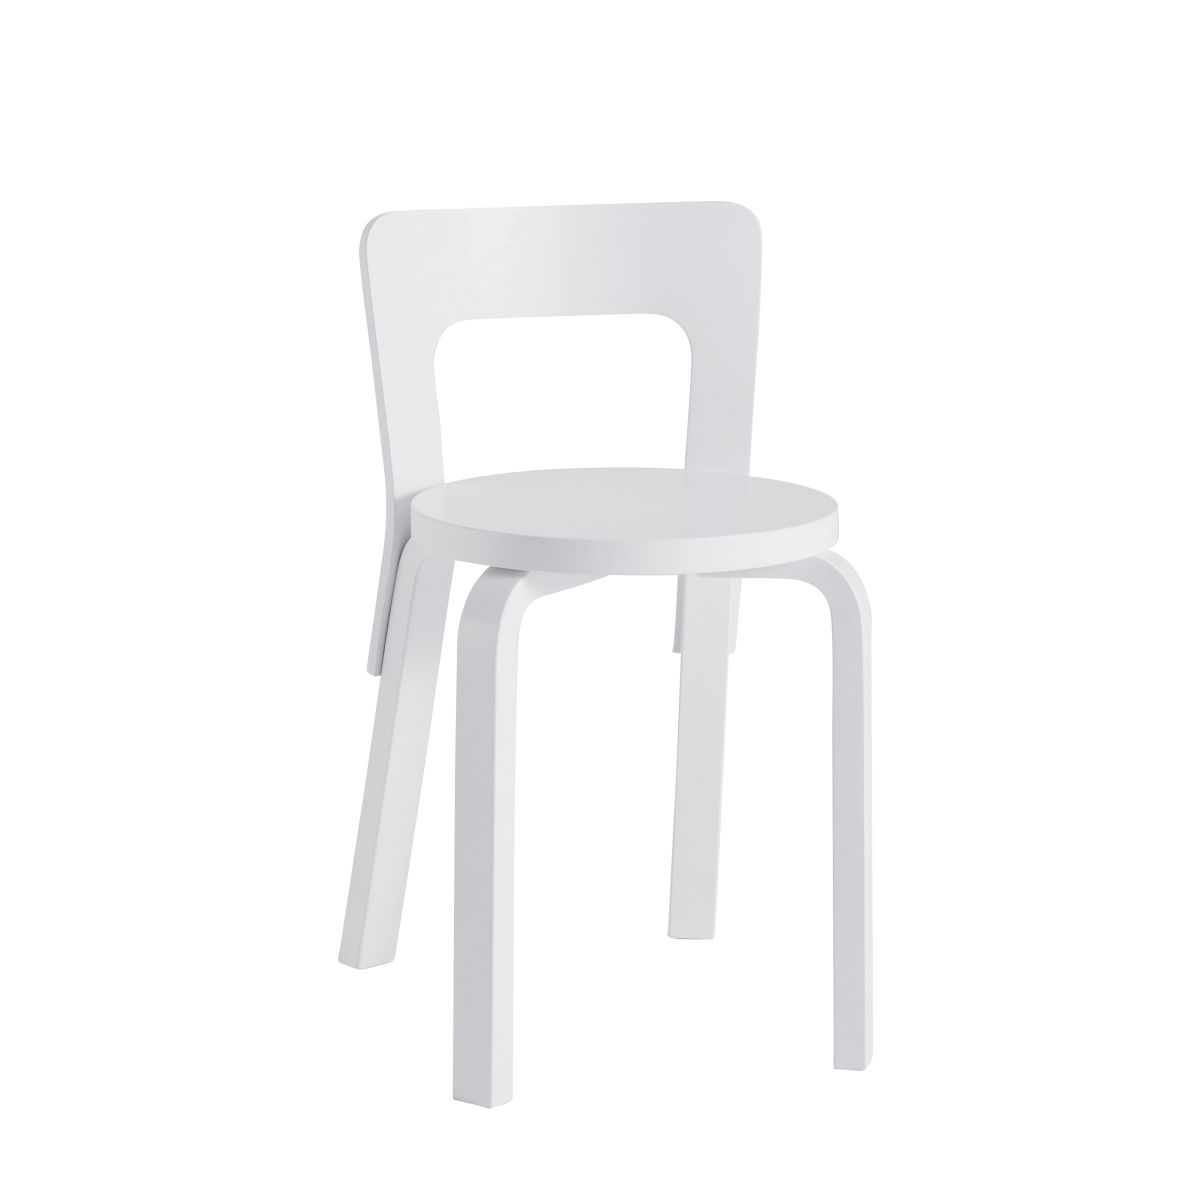 Chair 65 white lacquer